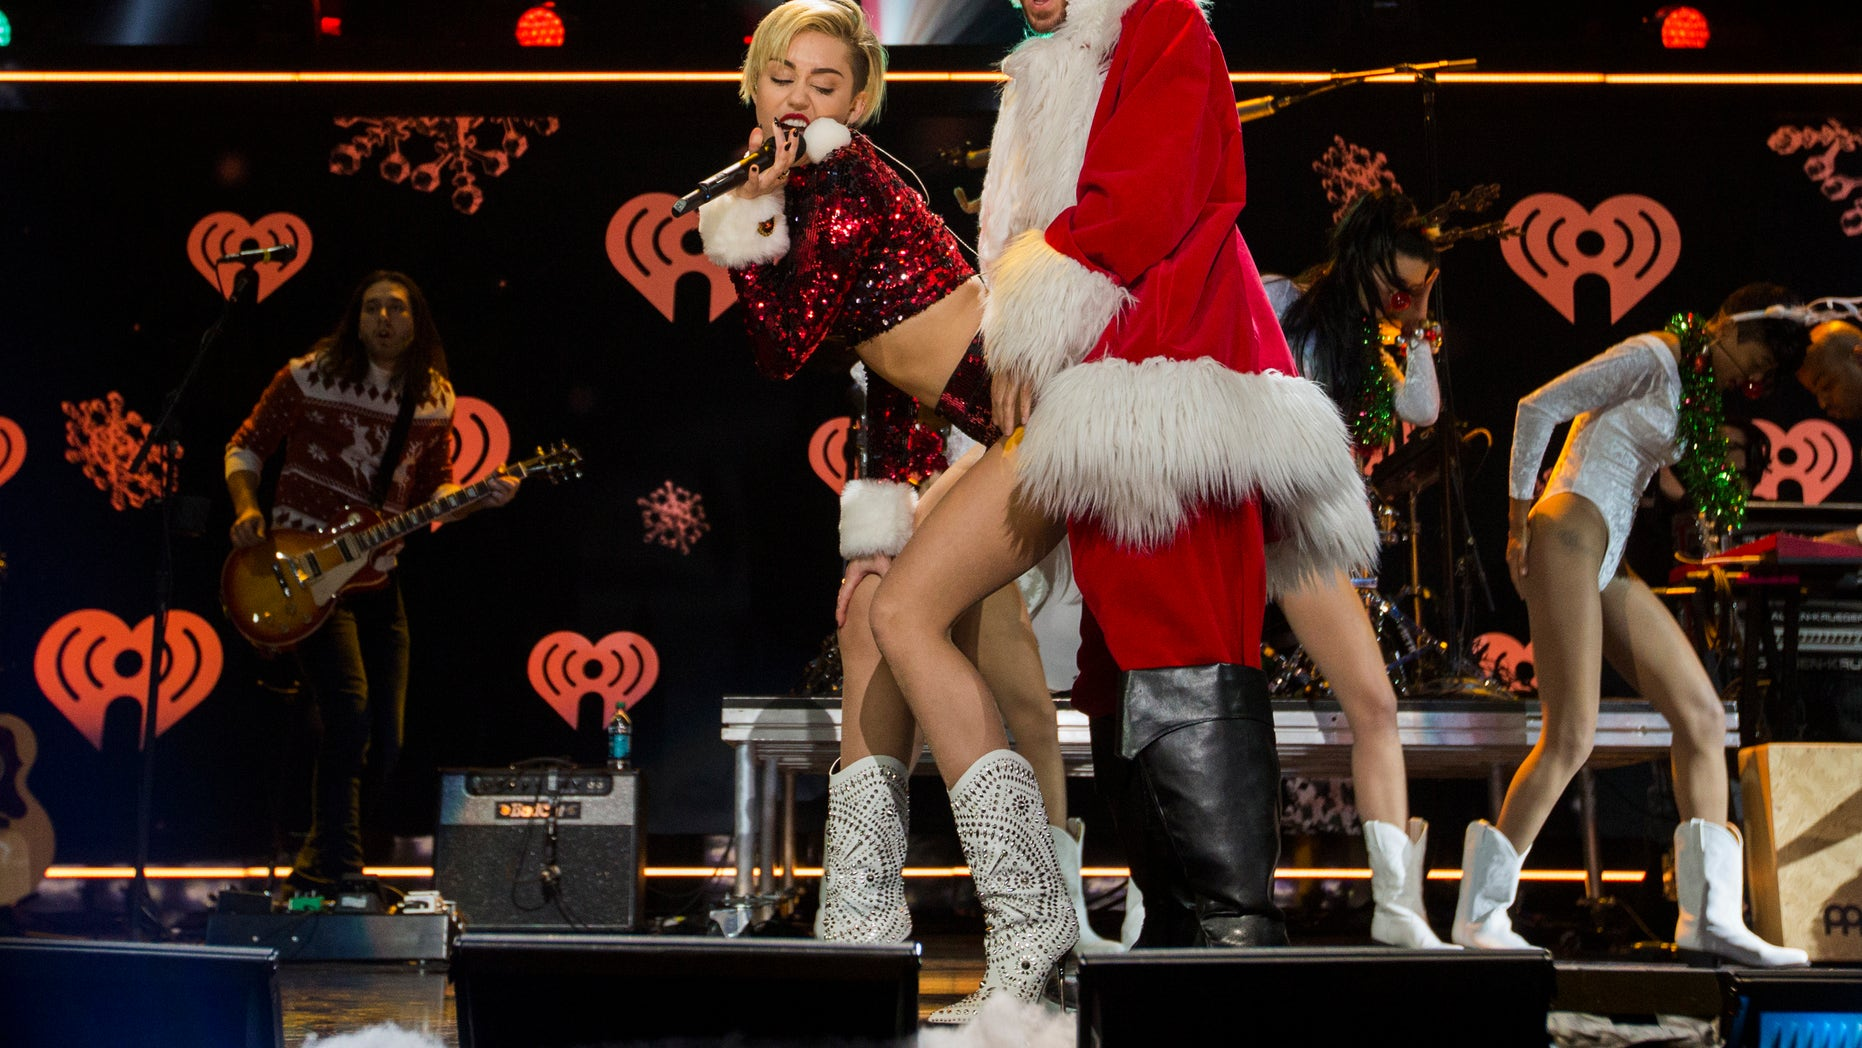 "December 13, 2013. Miley Cyrus ""twerks"" a performer dressed as Santa Claus as she performs during the 2013 Z100 Jingle Ball in New York."